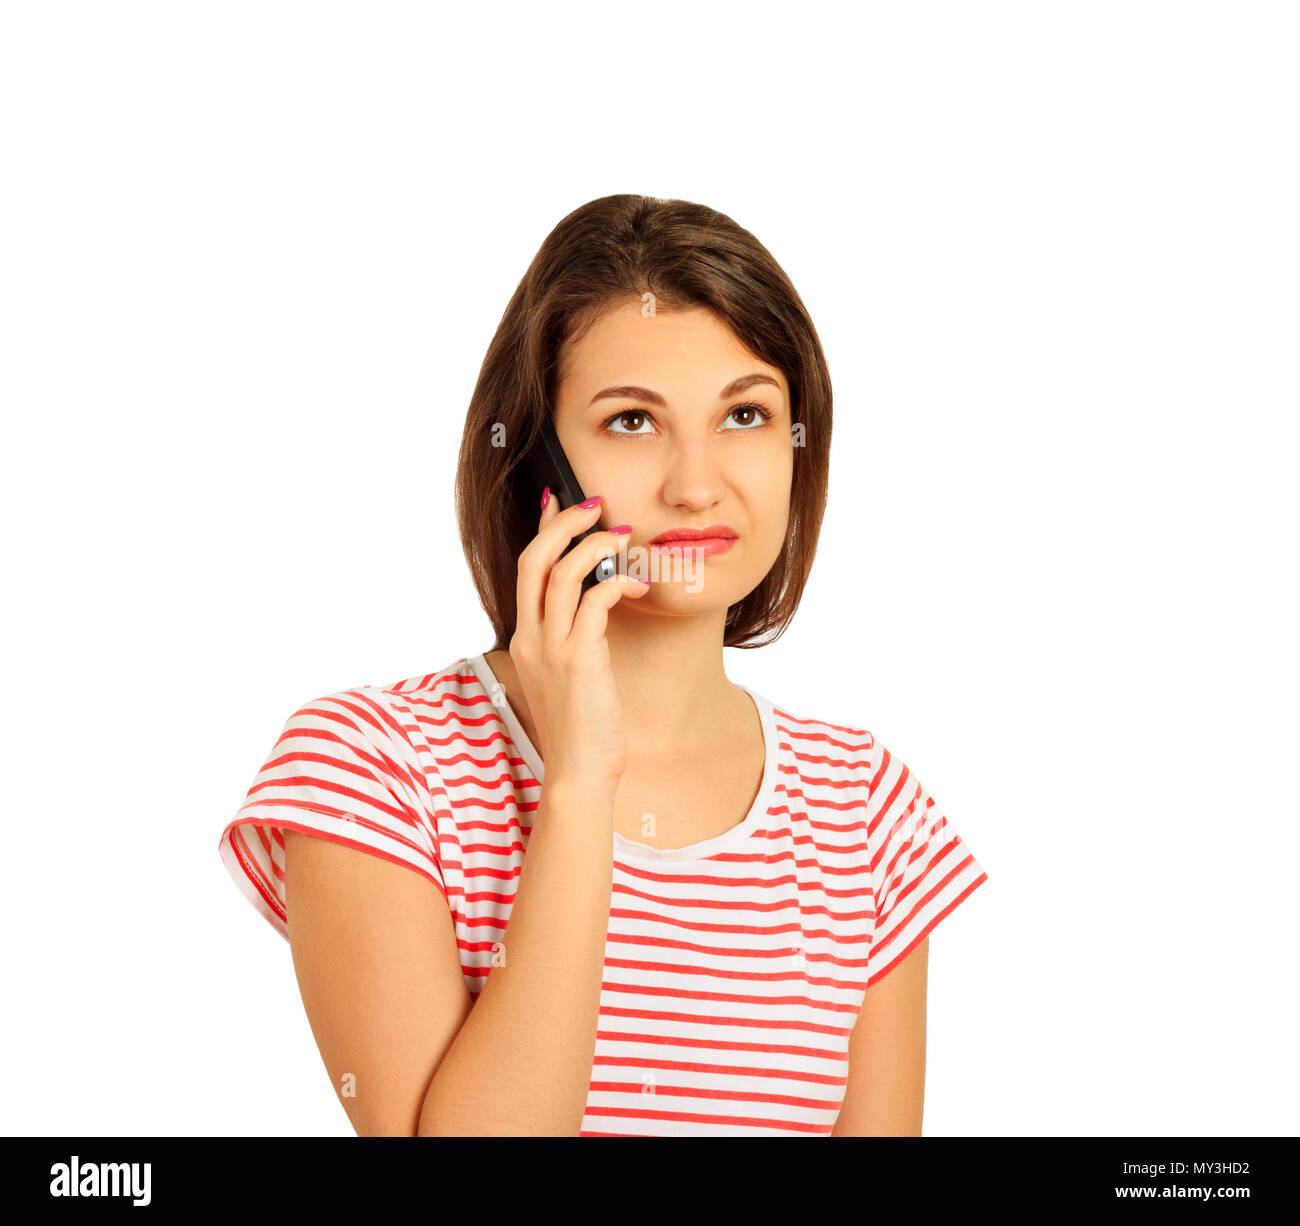 disgruntled girl talking on mobile phone. look with perplexity. emotional girl isolated on white background. - Stock Image